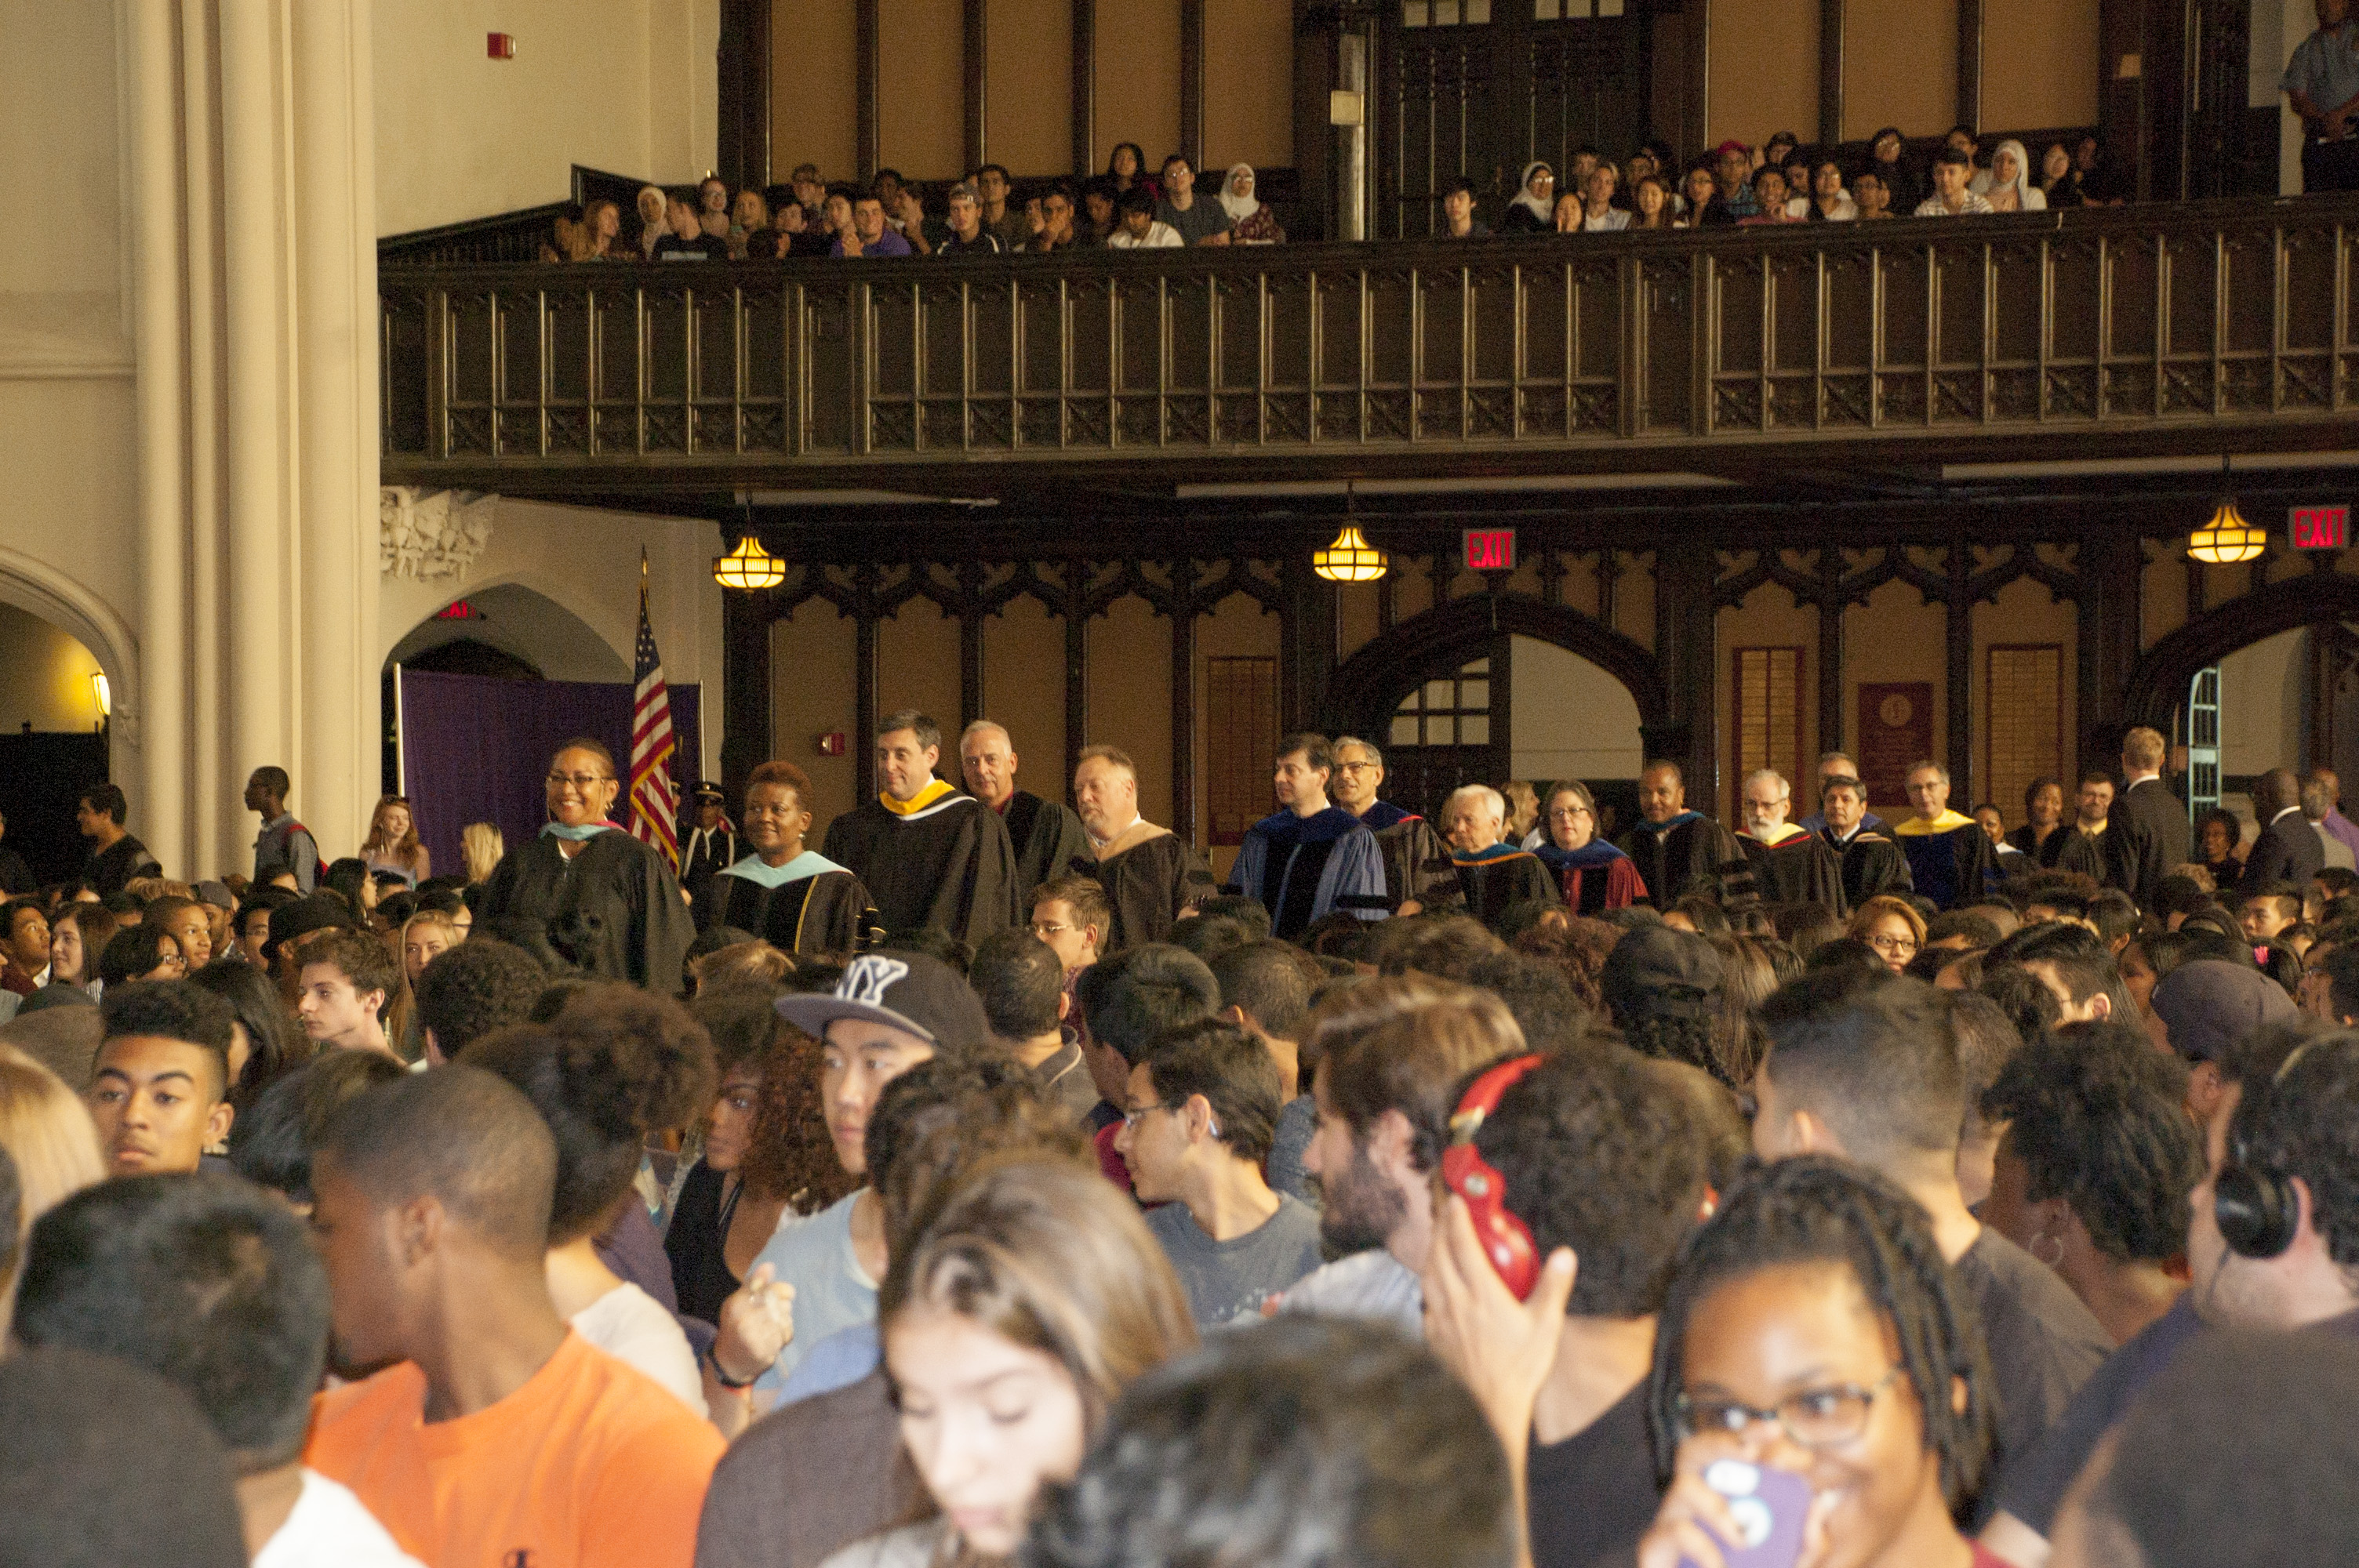 The freshman class sits and watches faculty, staff and administrators as they walk down the aisle of the Great Hall for Freshman Convocation.